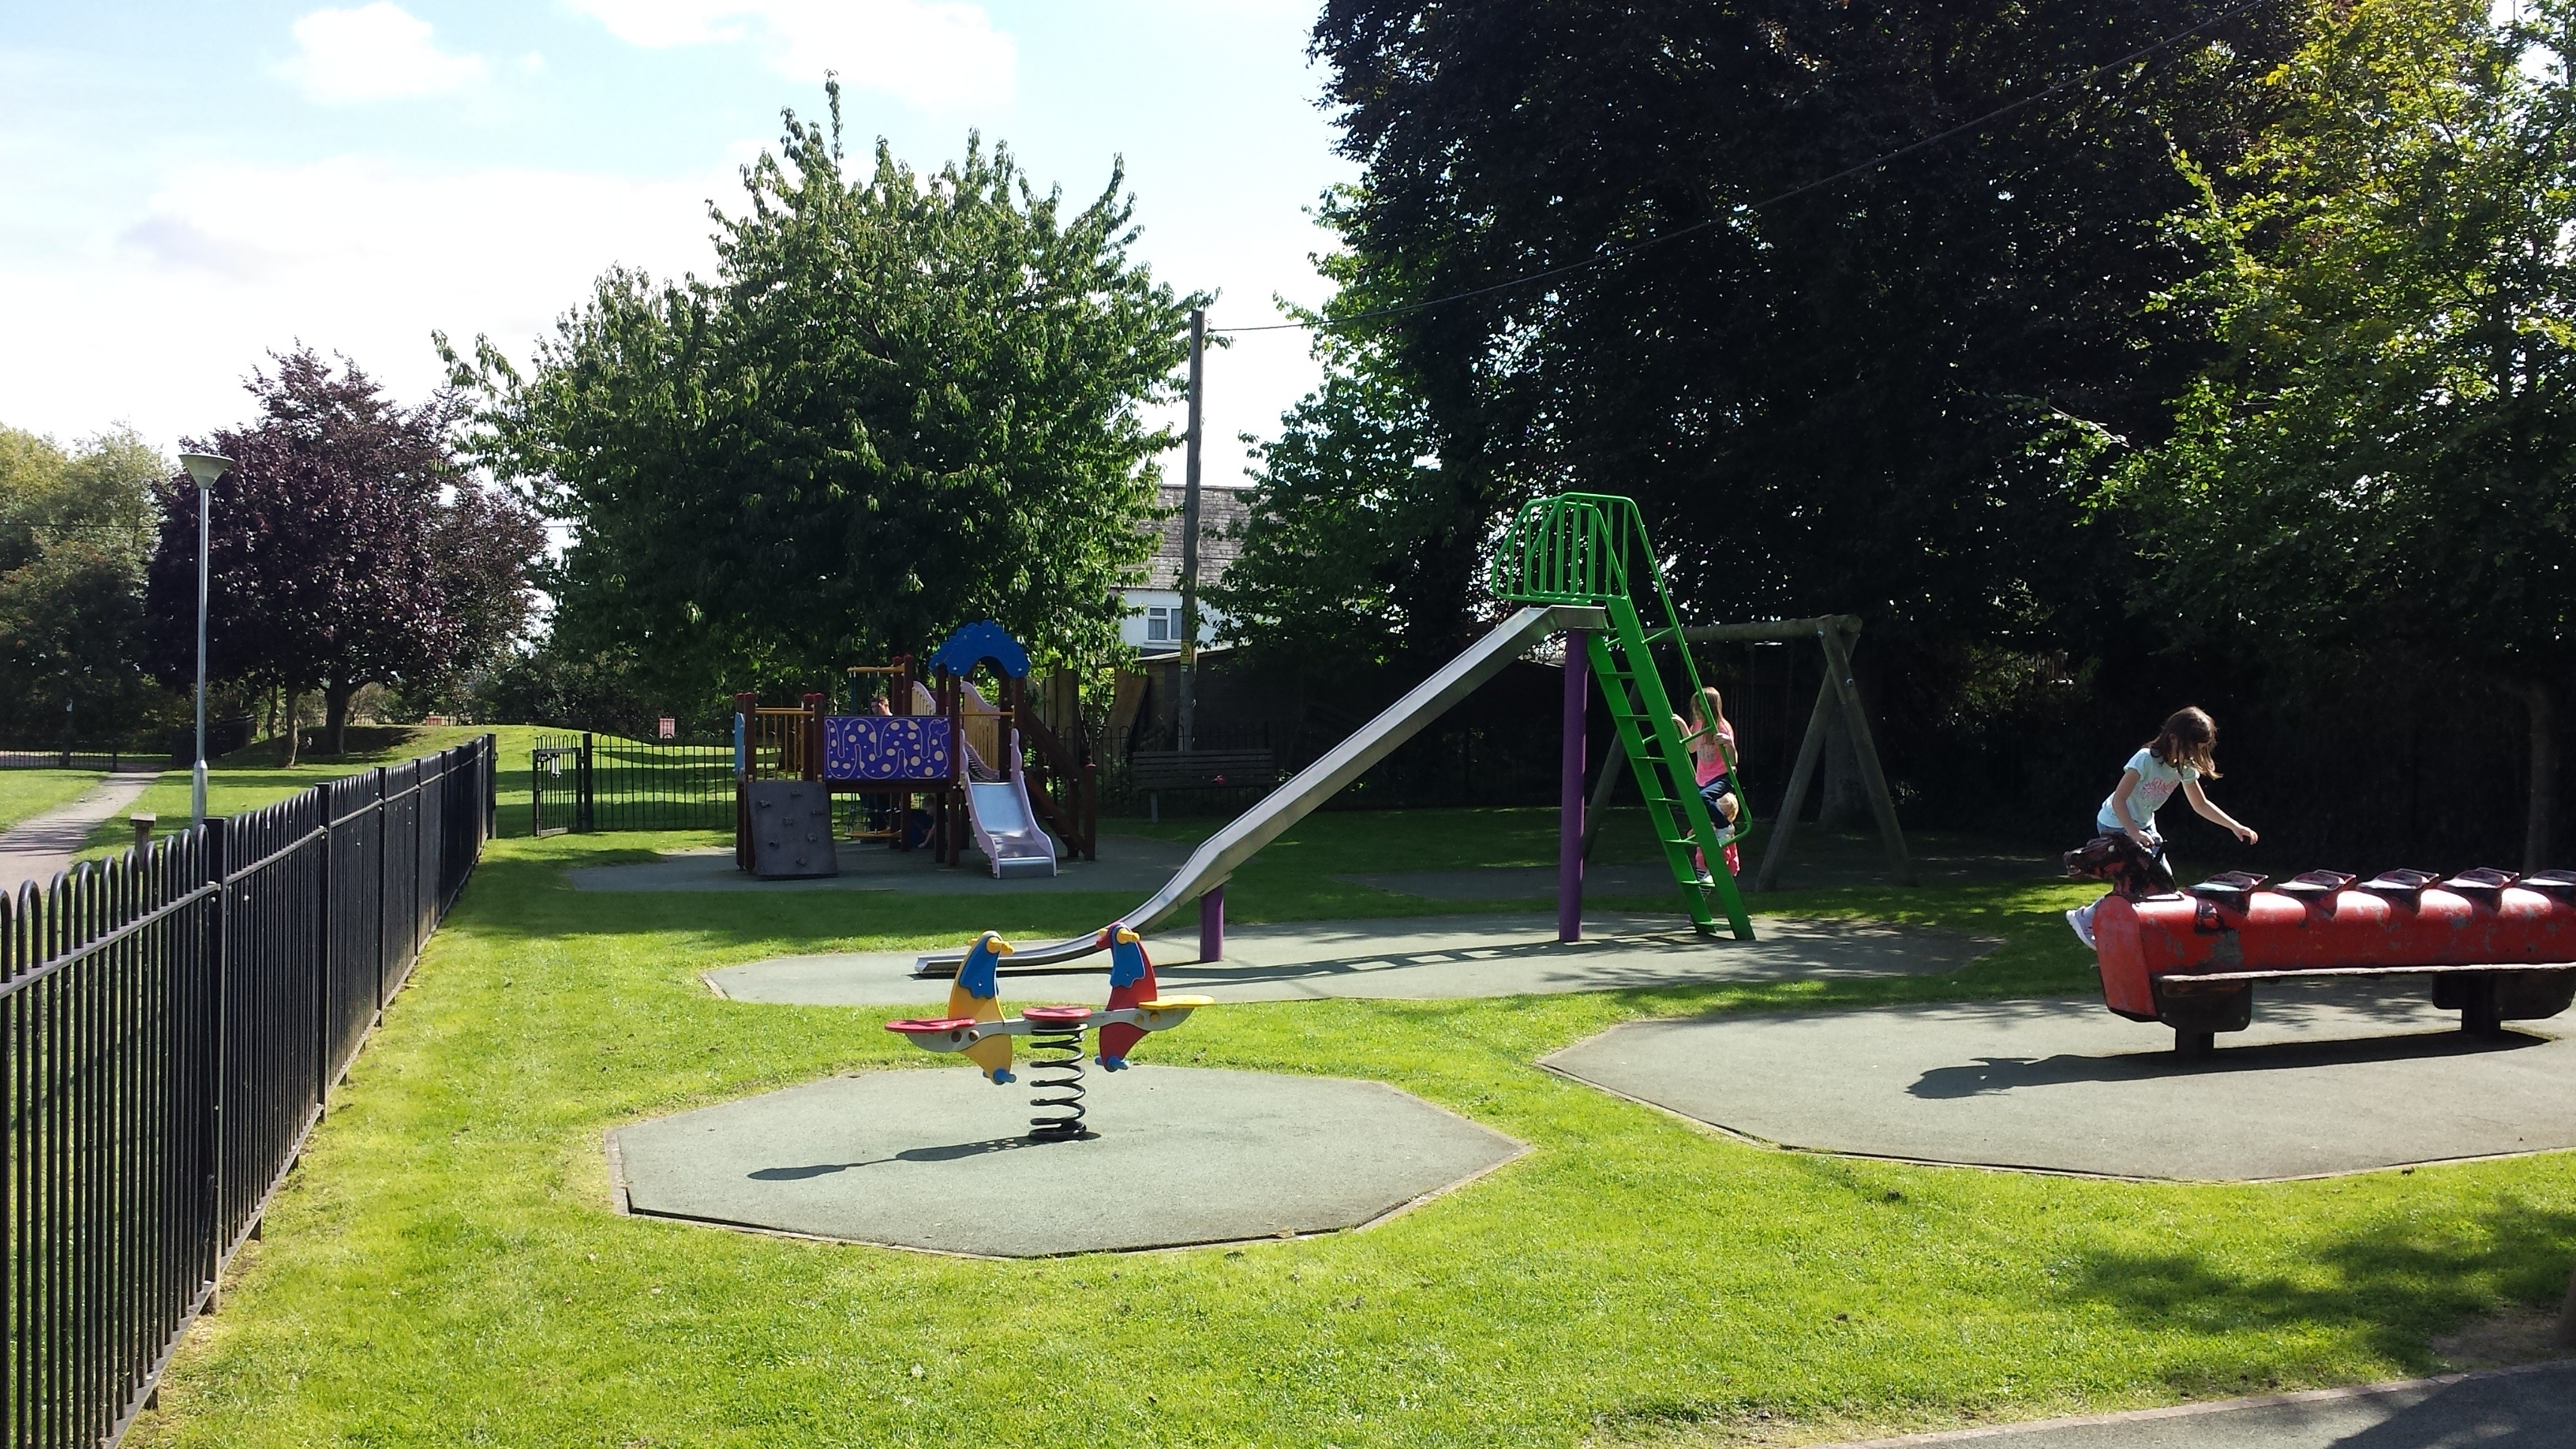 Appleford play area